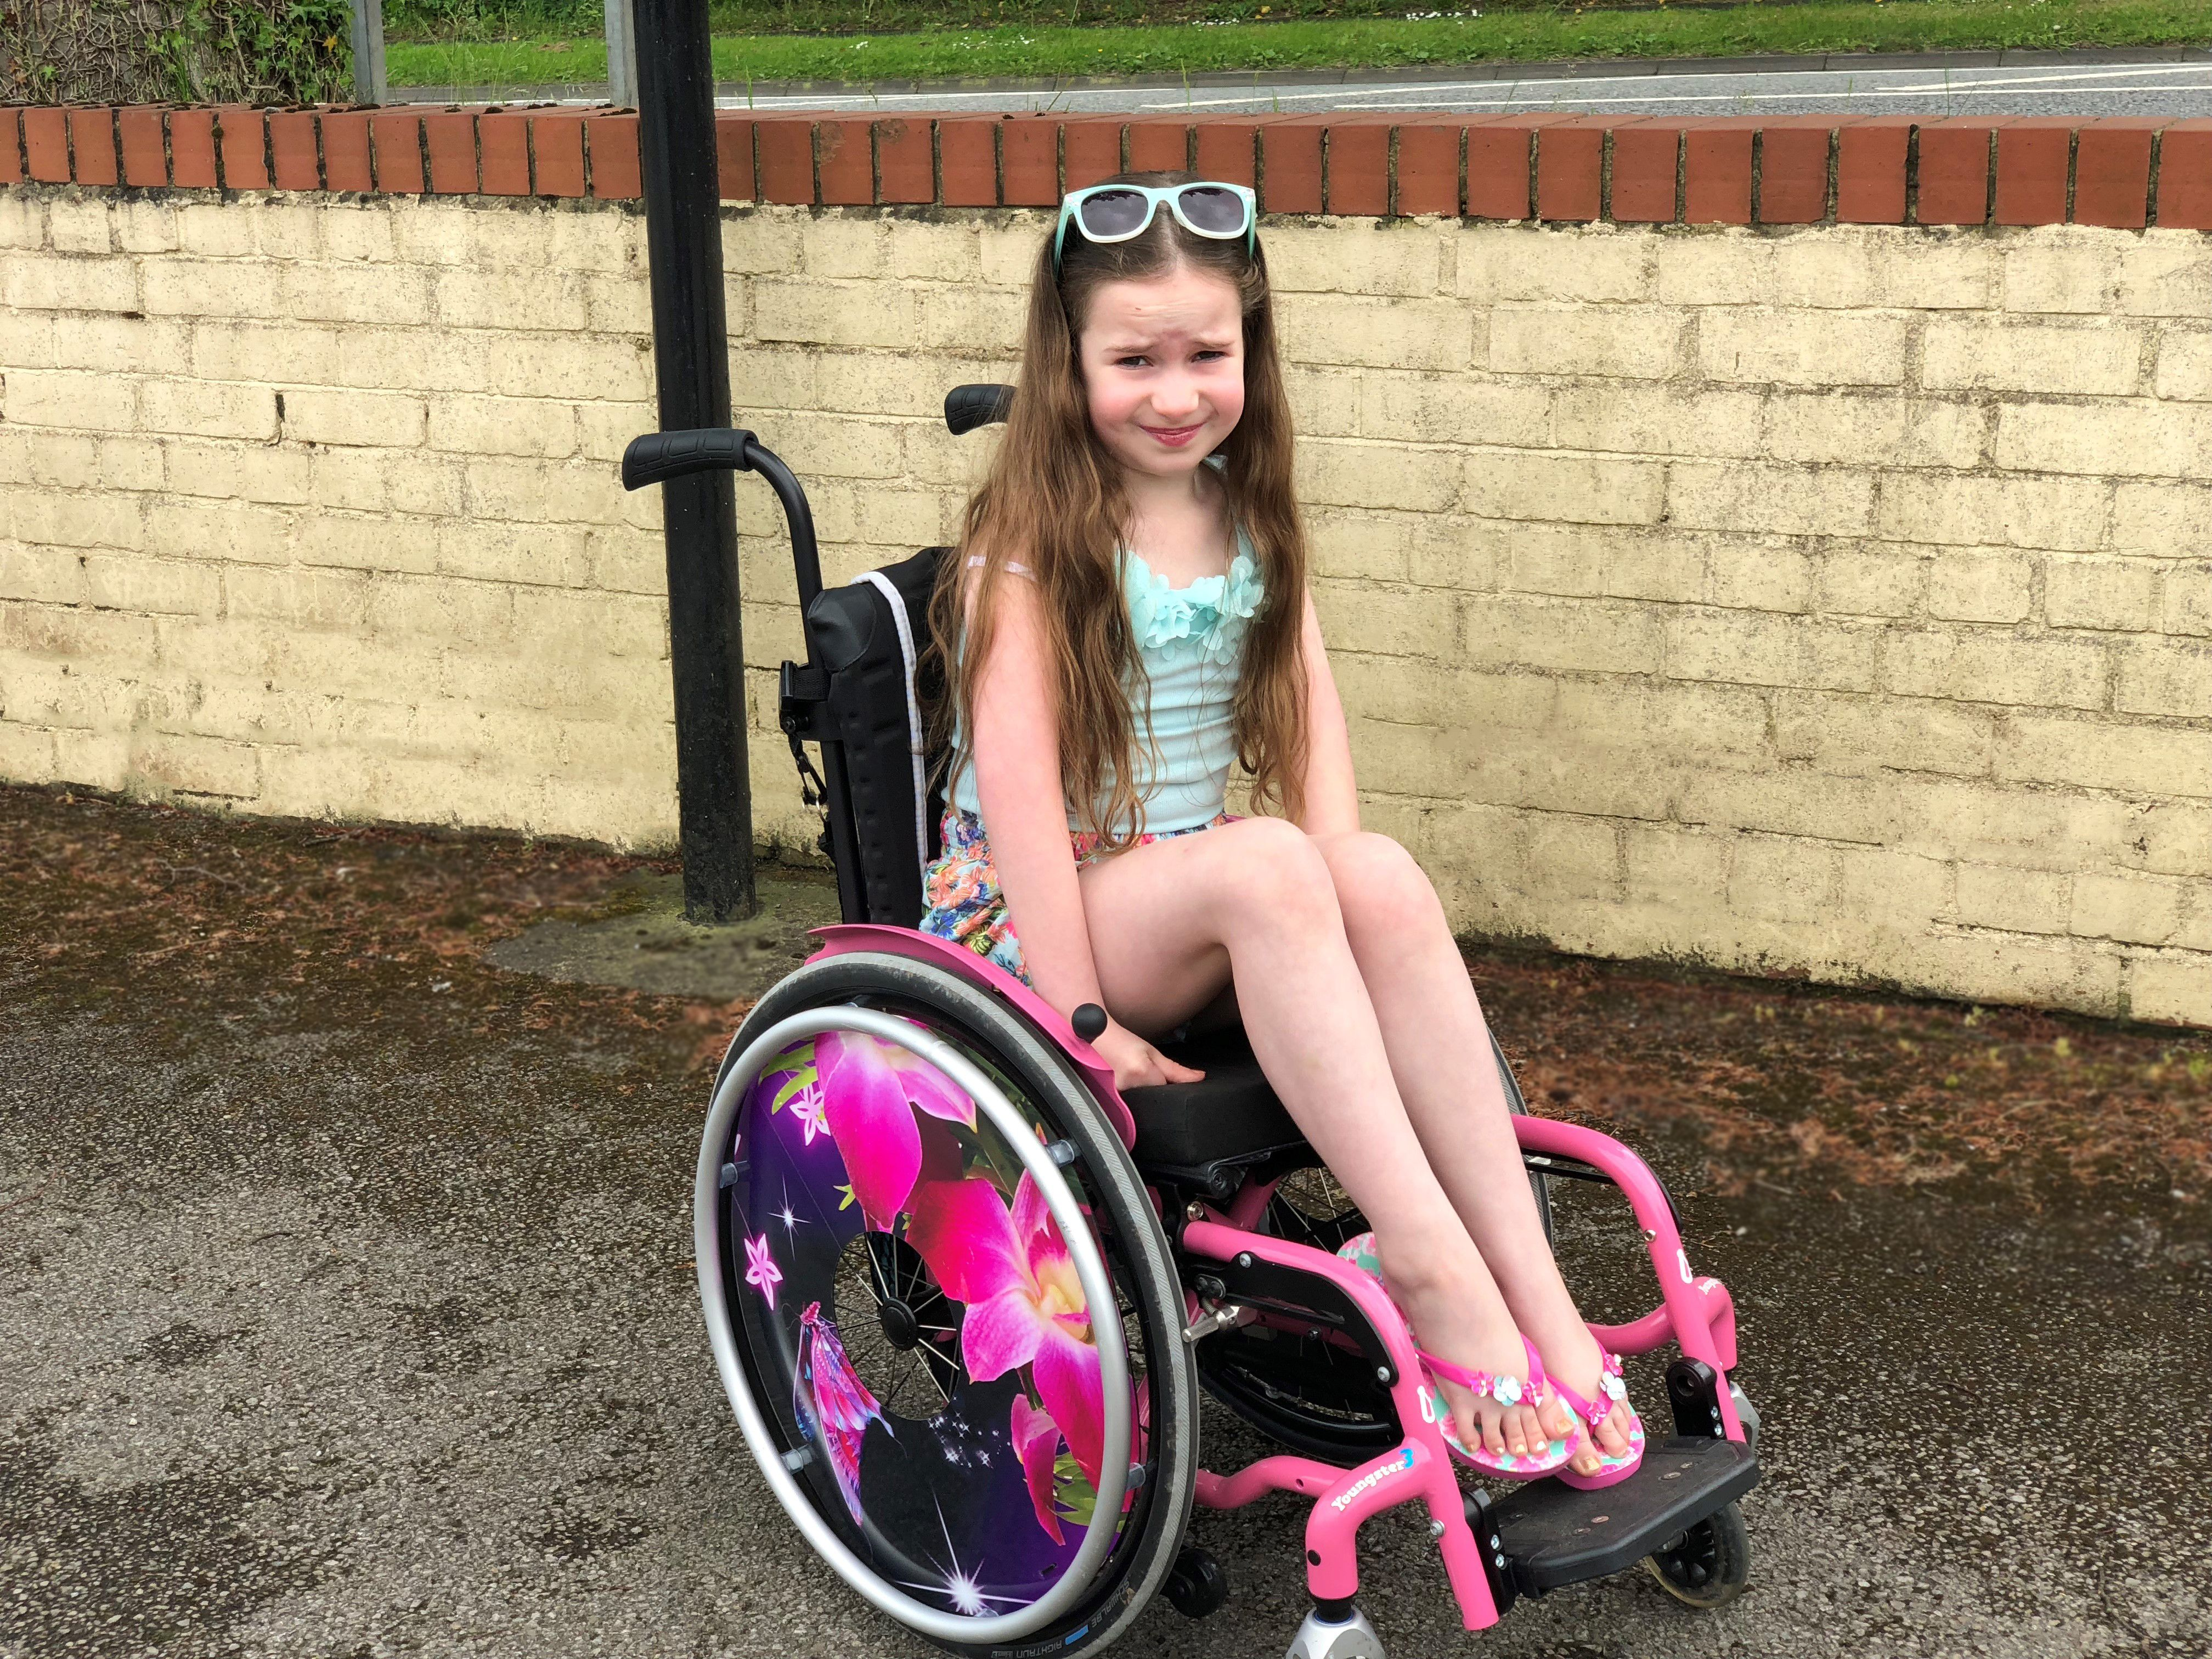 Amelia sat in the Zippie Youngster 3 wheelchair with flowery spoke covers on the wheels